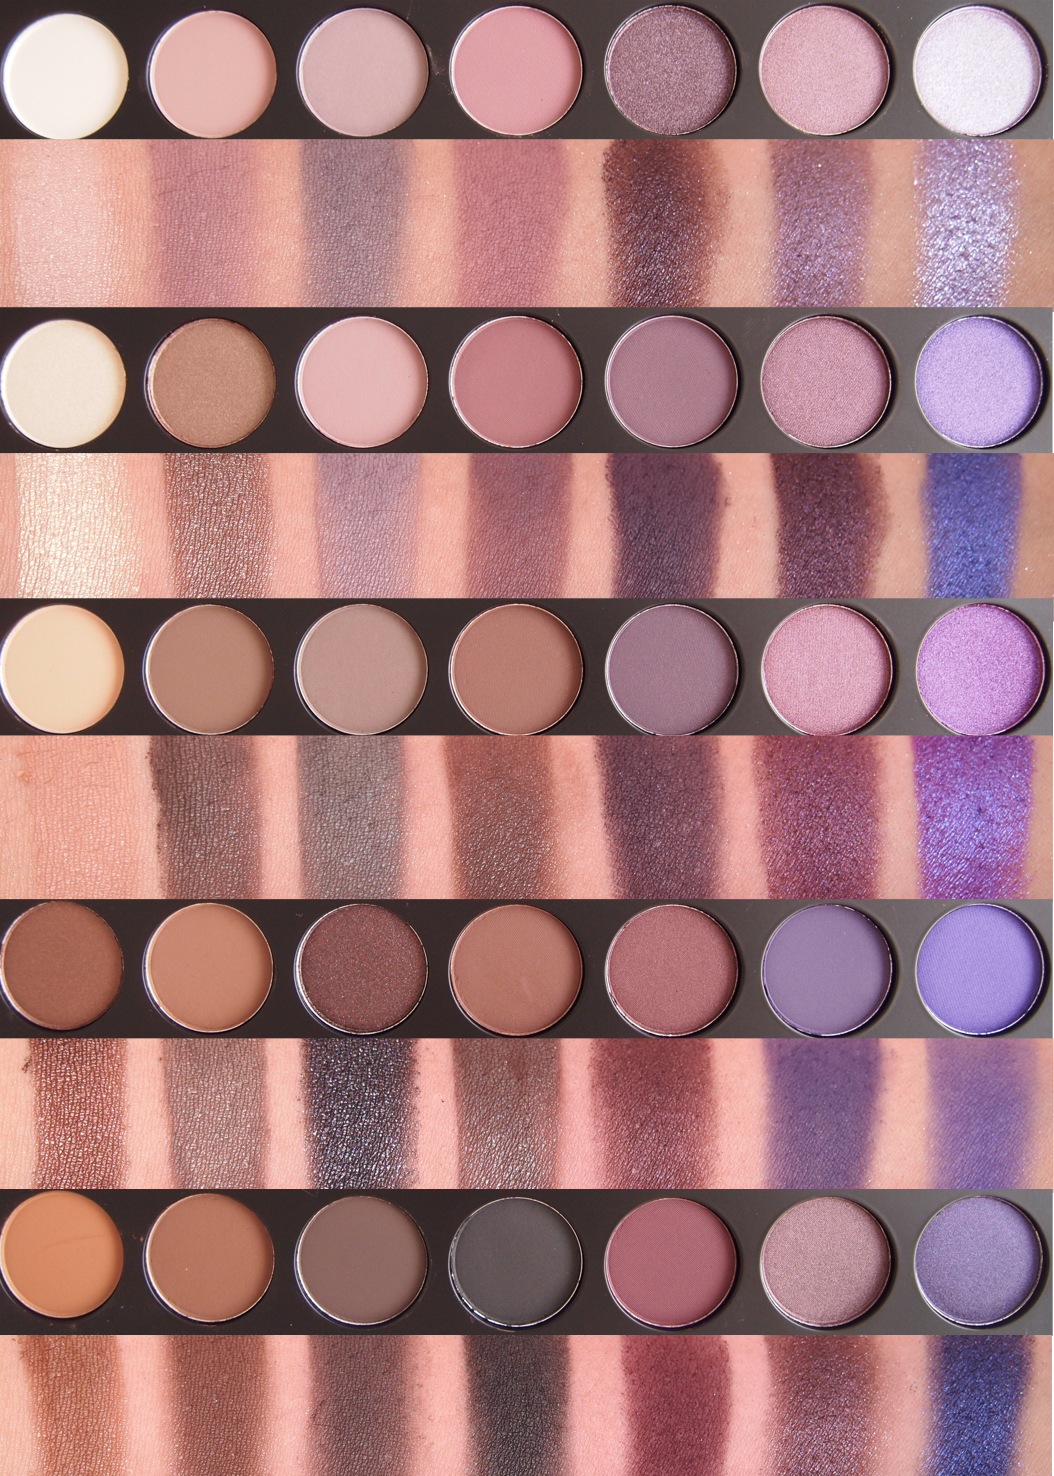 Morphe Brushes 35E Palette and 35P Palette (Swatch